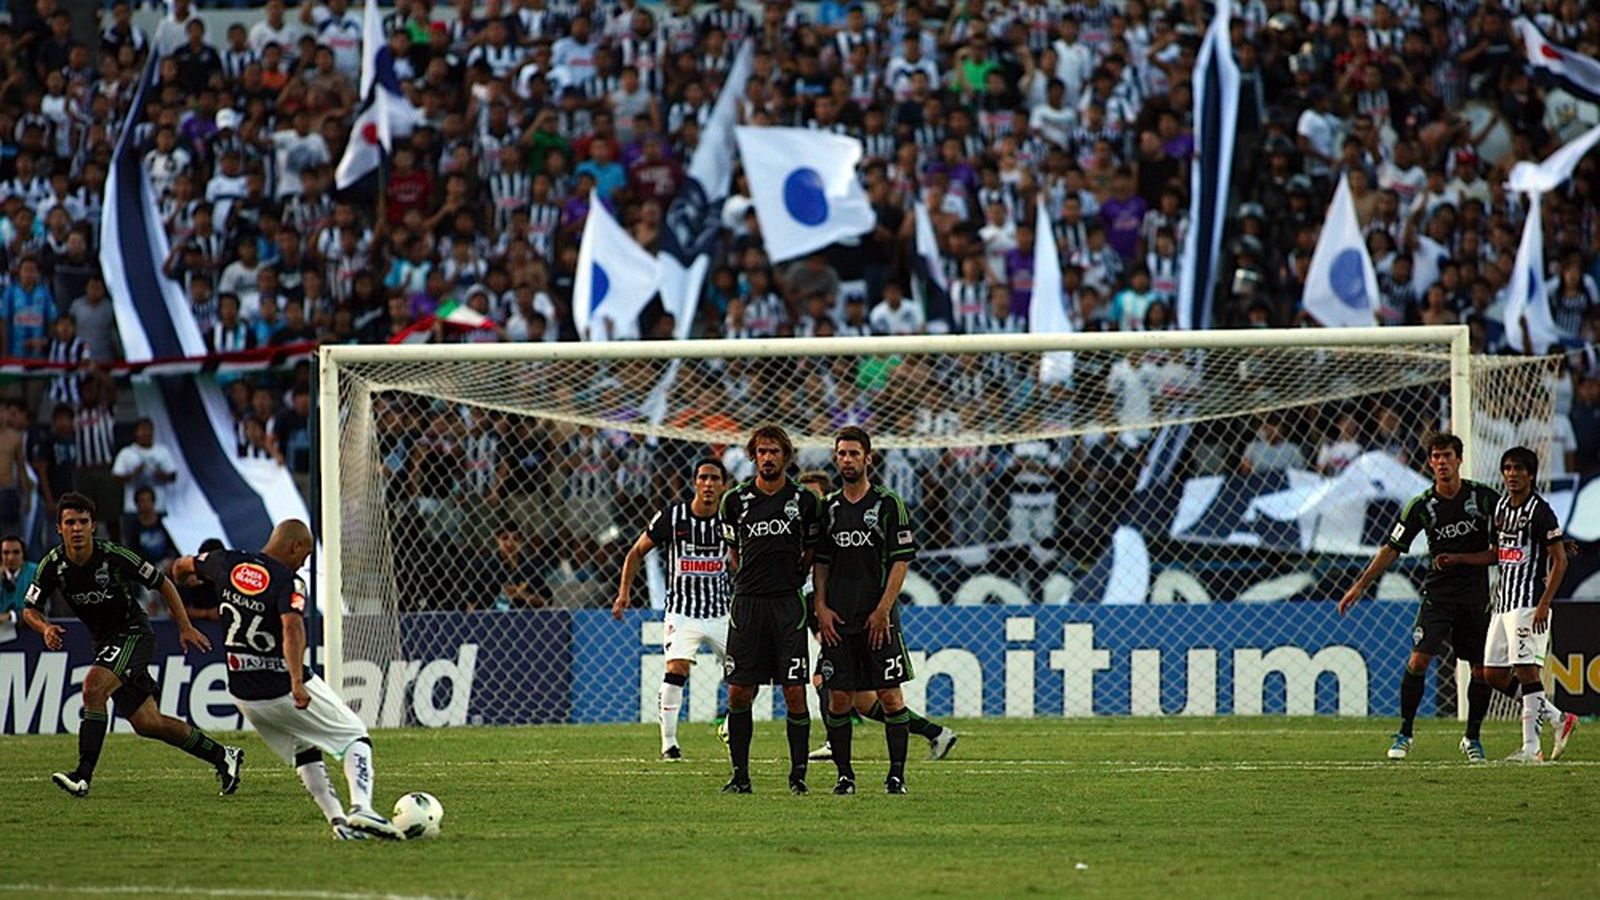 CONCACAF Champions League, Seattle Sounders Vs. Monterrey: Highlights, Quotes, Statistics